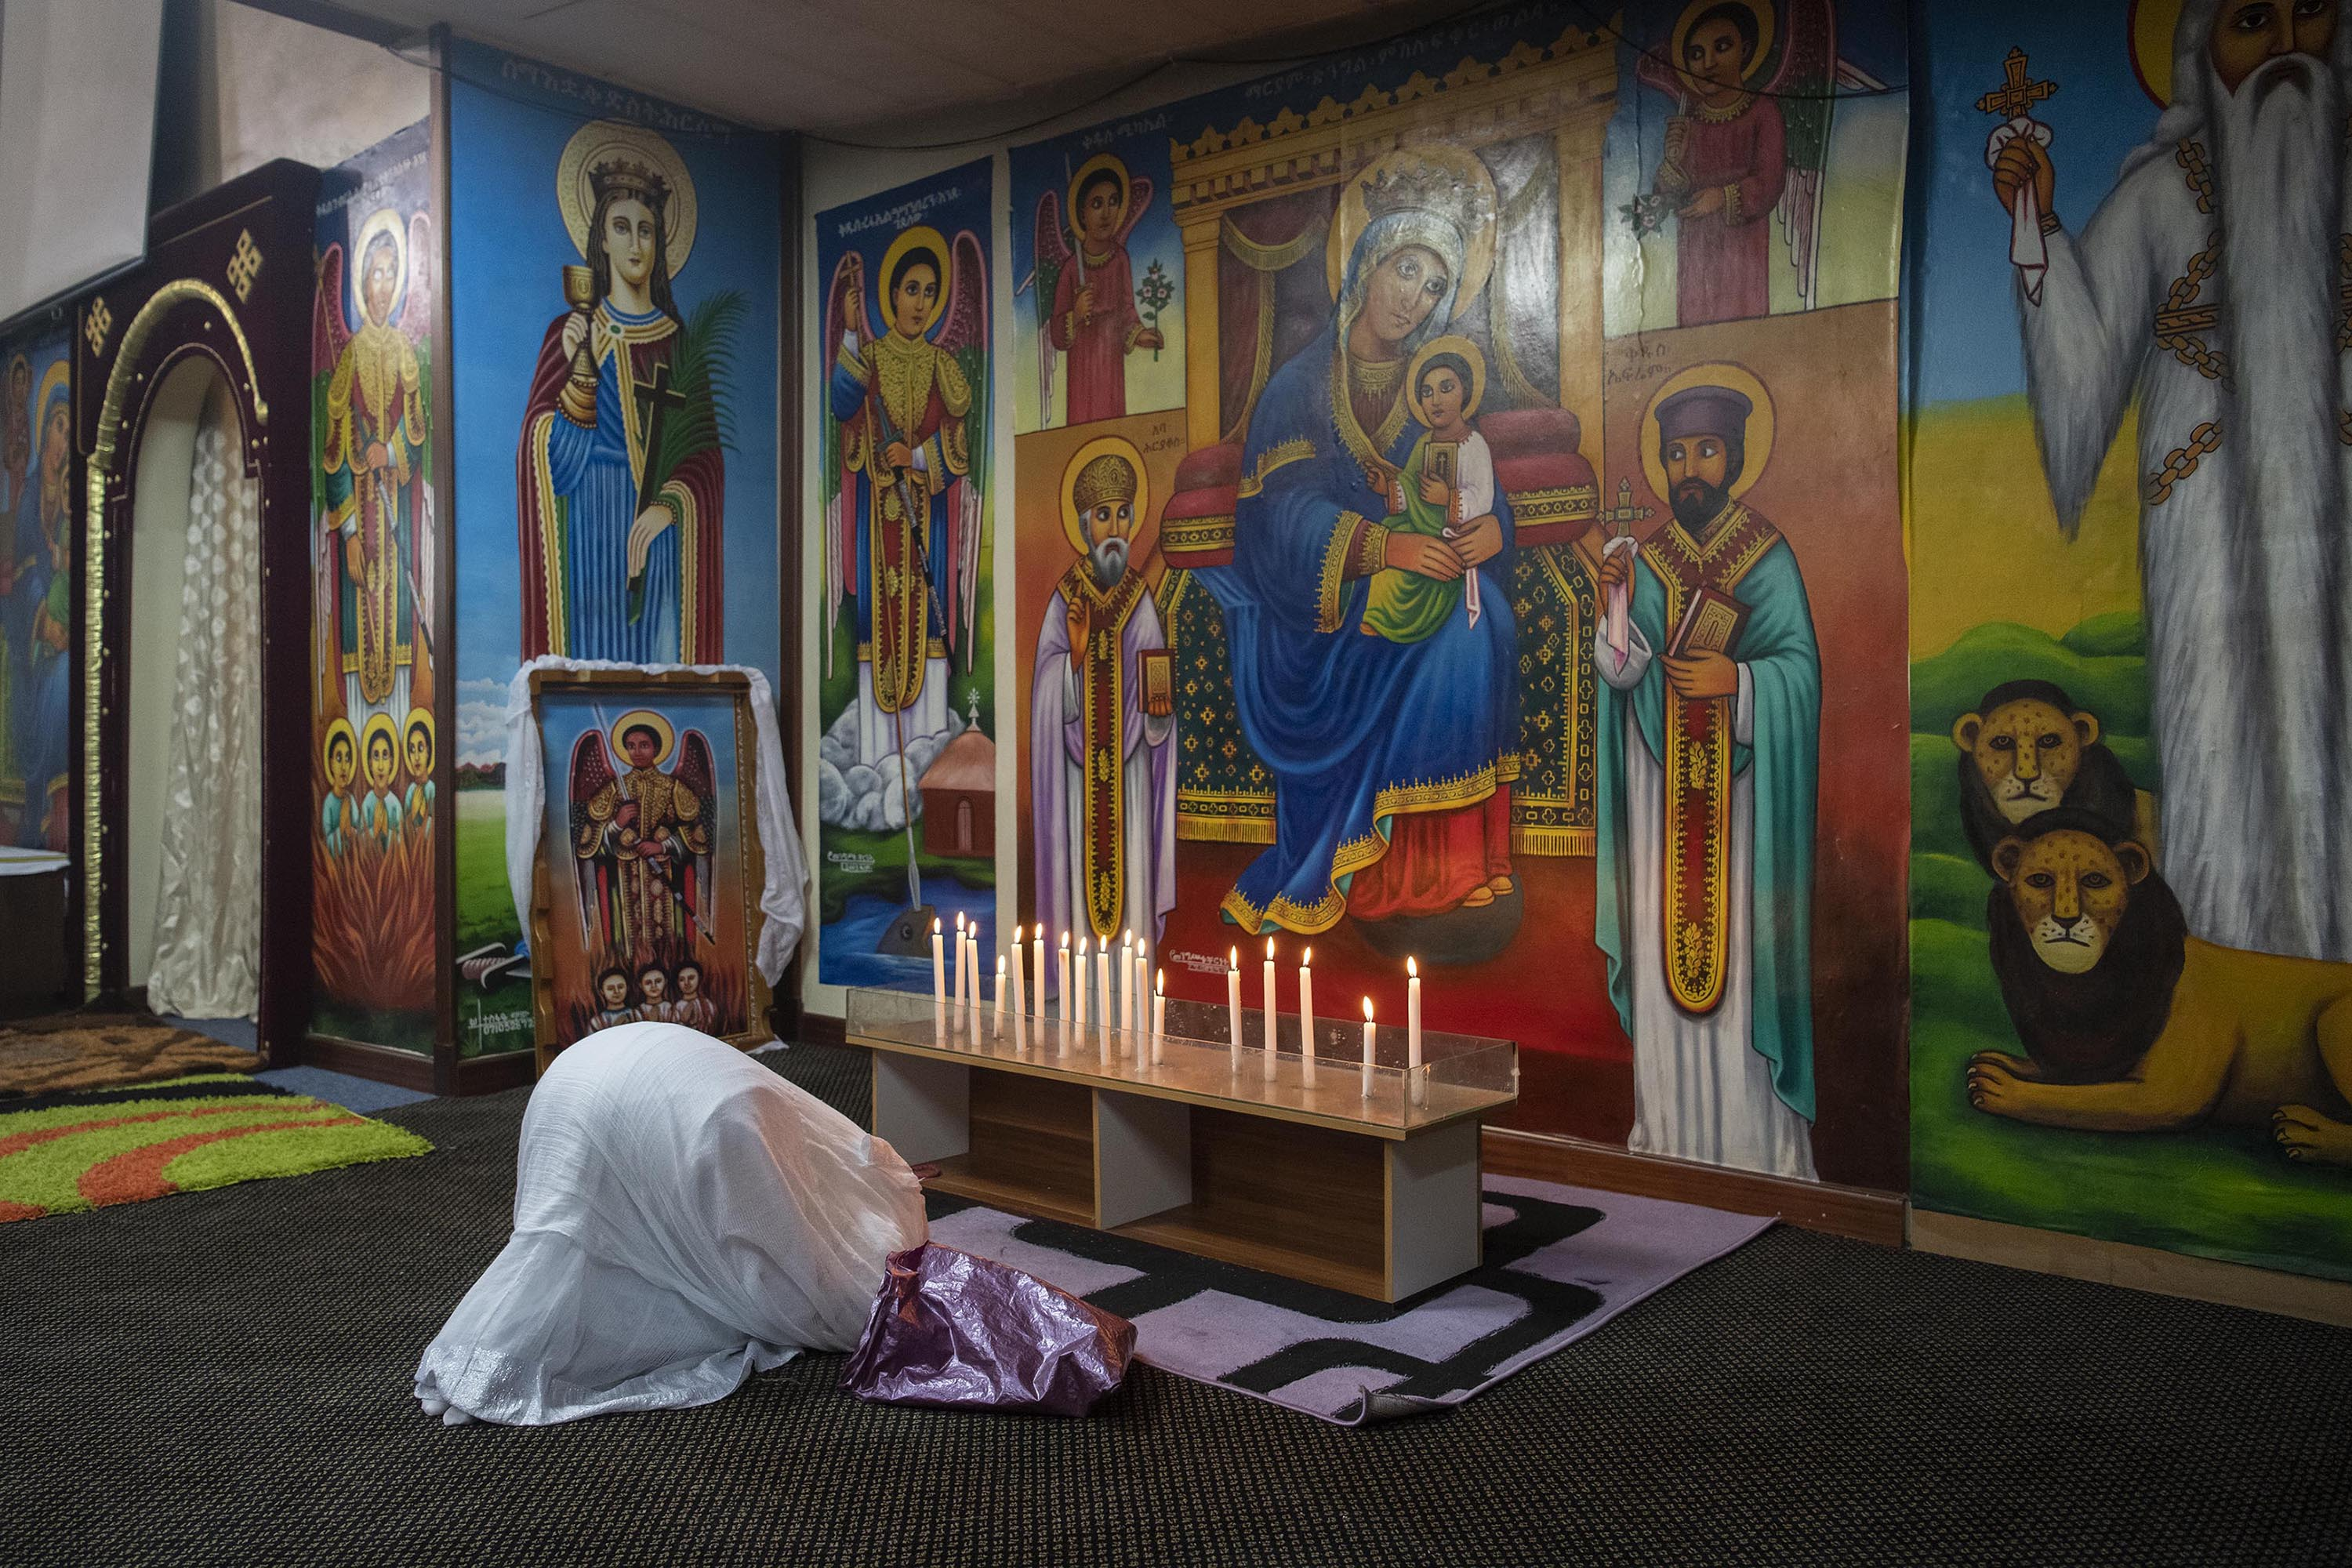 12 September 2019: An Ethiopian woman in prayer during the New Year service at the Ethiopian Orthodox Tewahedo Church in the Johannesburg suburb of Berea.